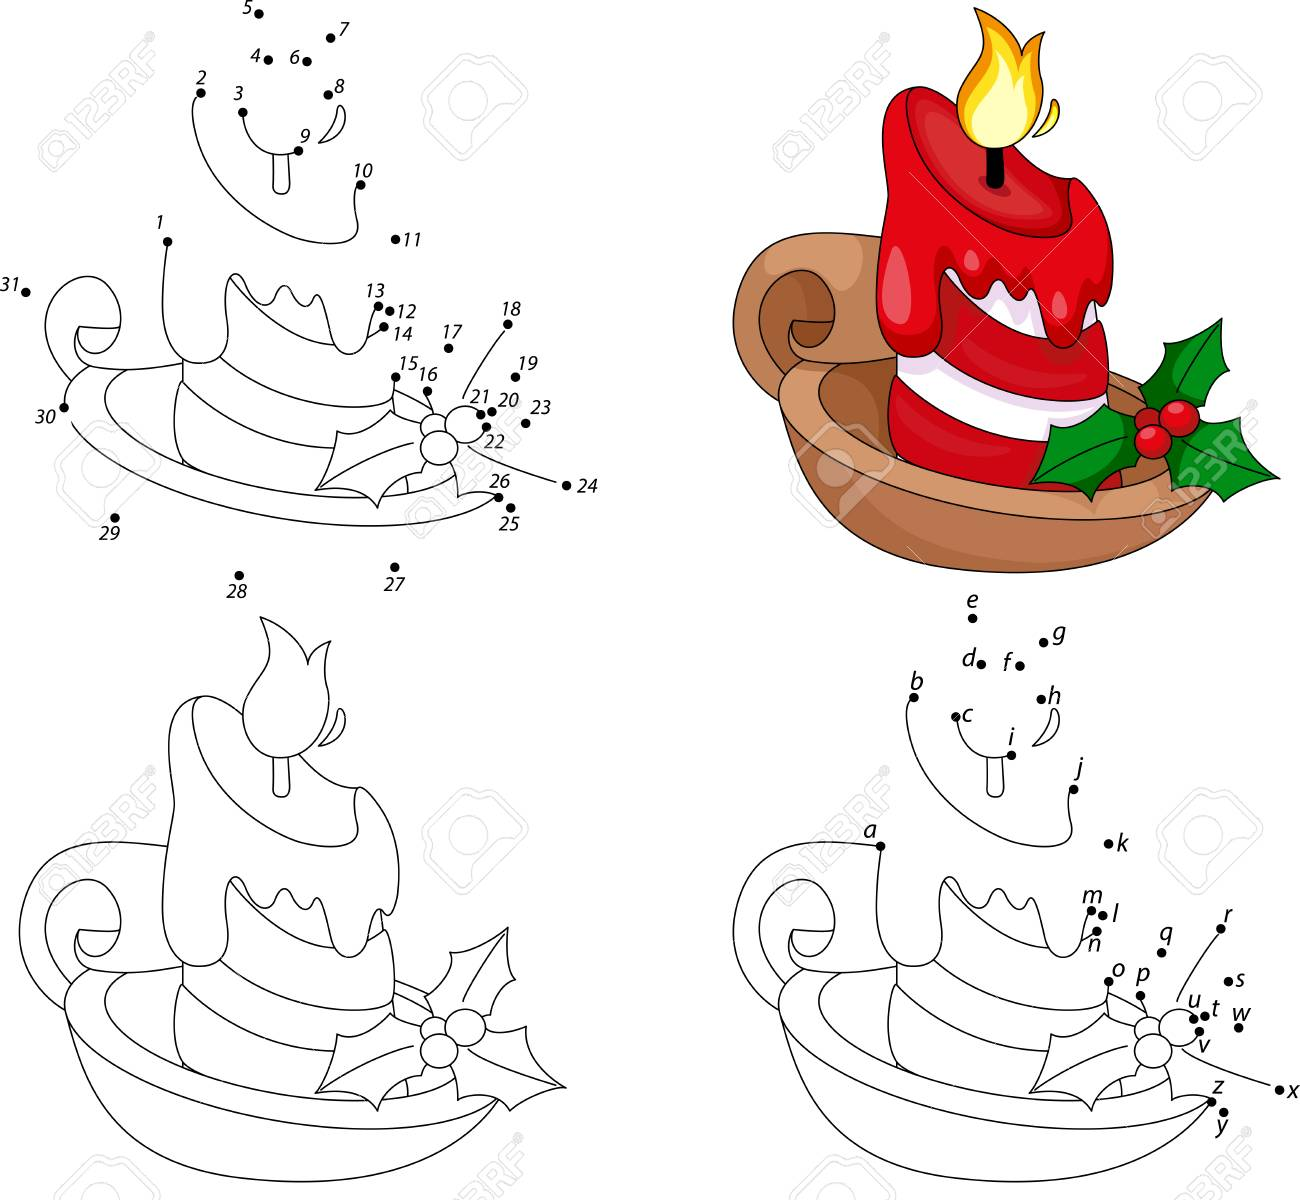 Christmas Cartoon Candle Coloring Book And Dot To Educational Game For Kids Stock Vector